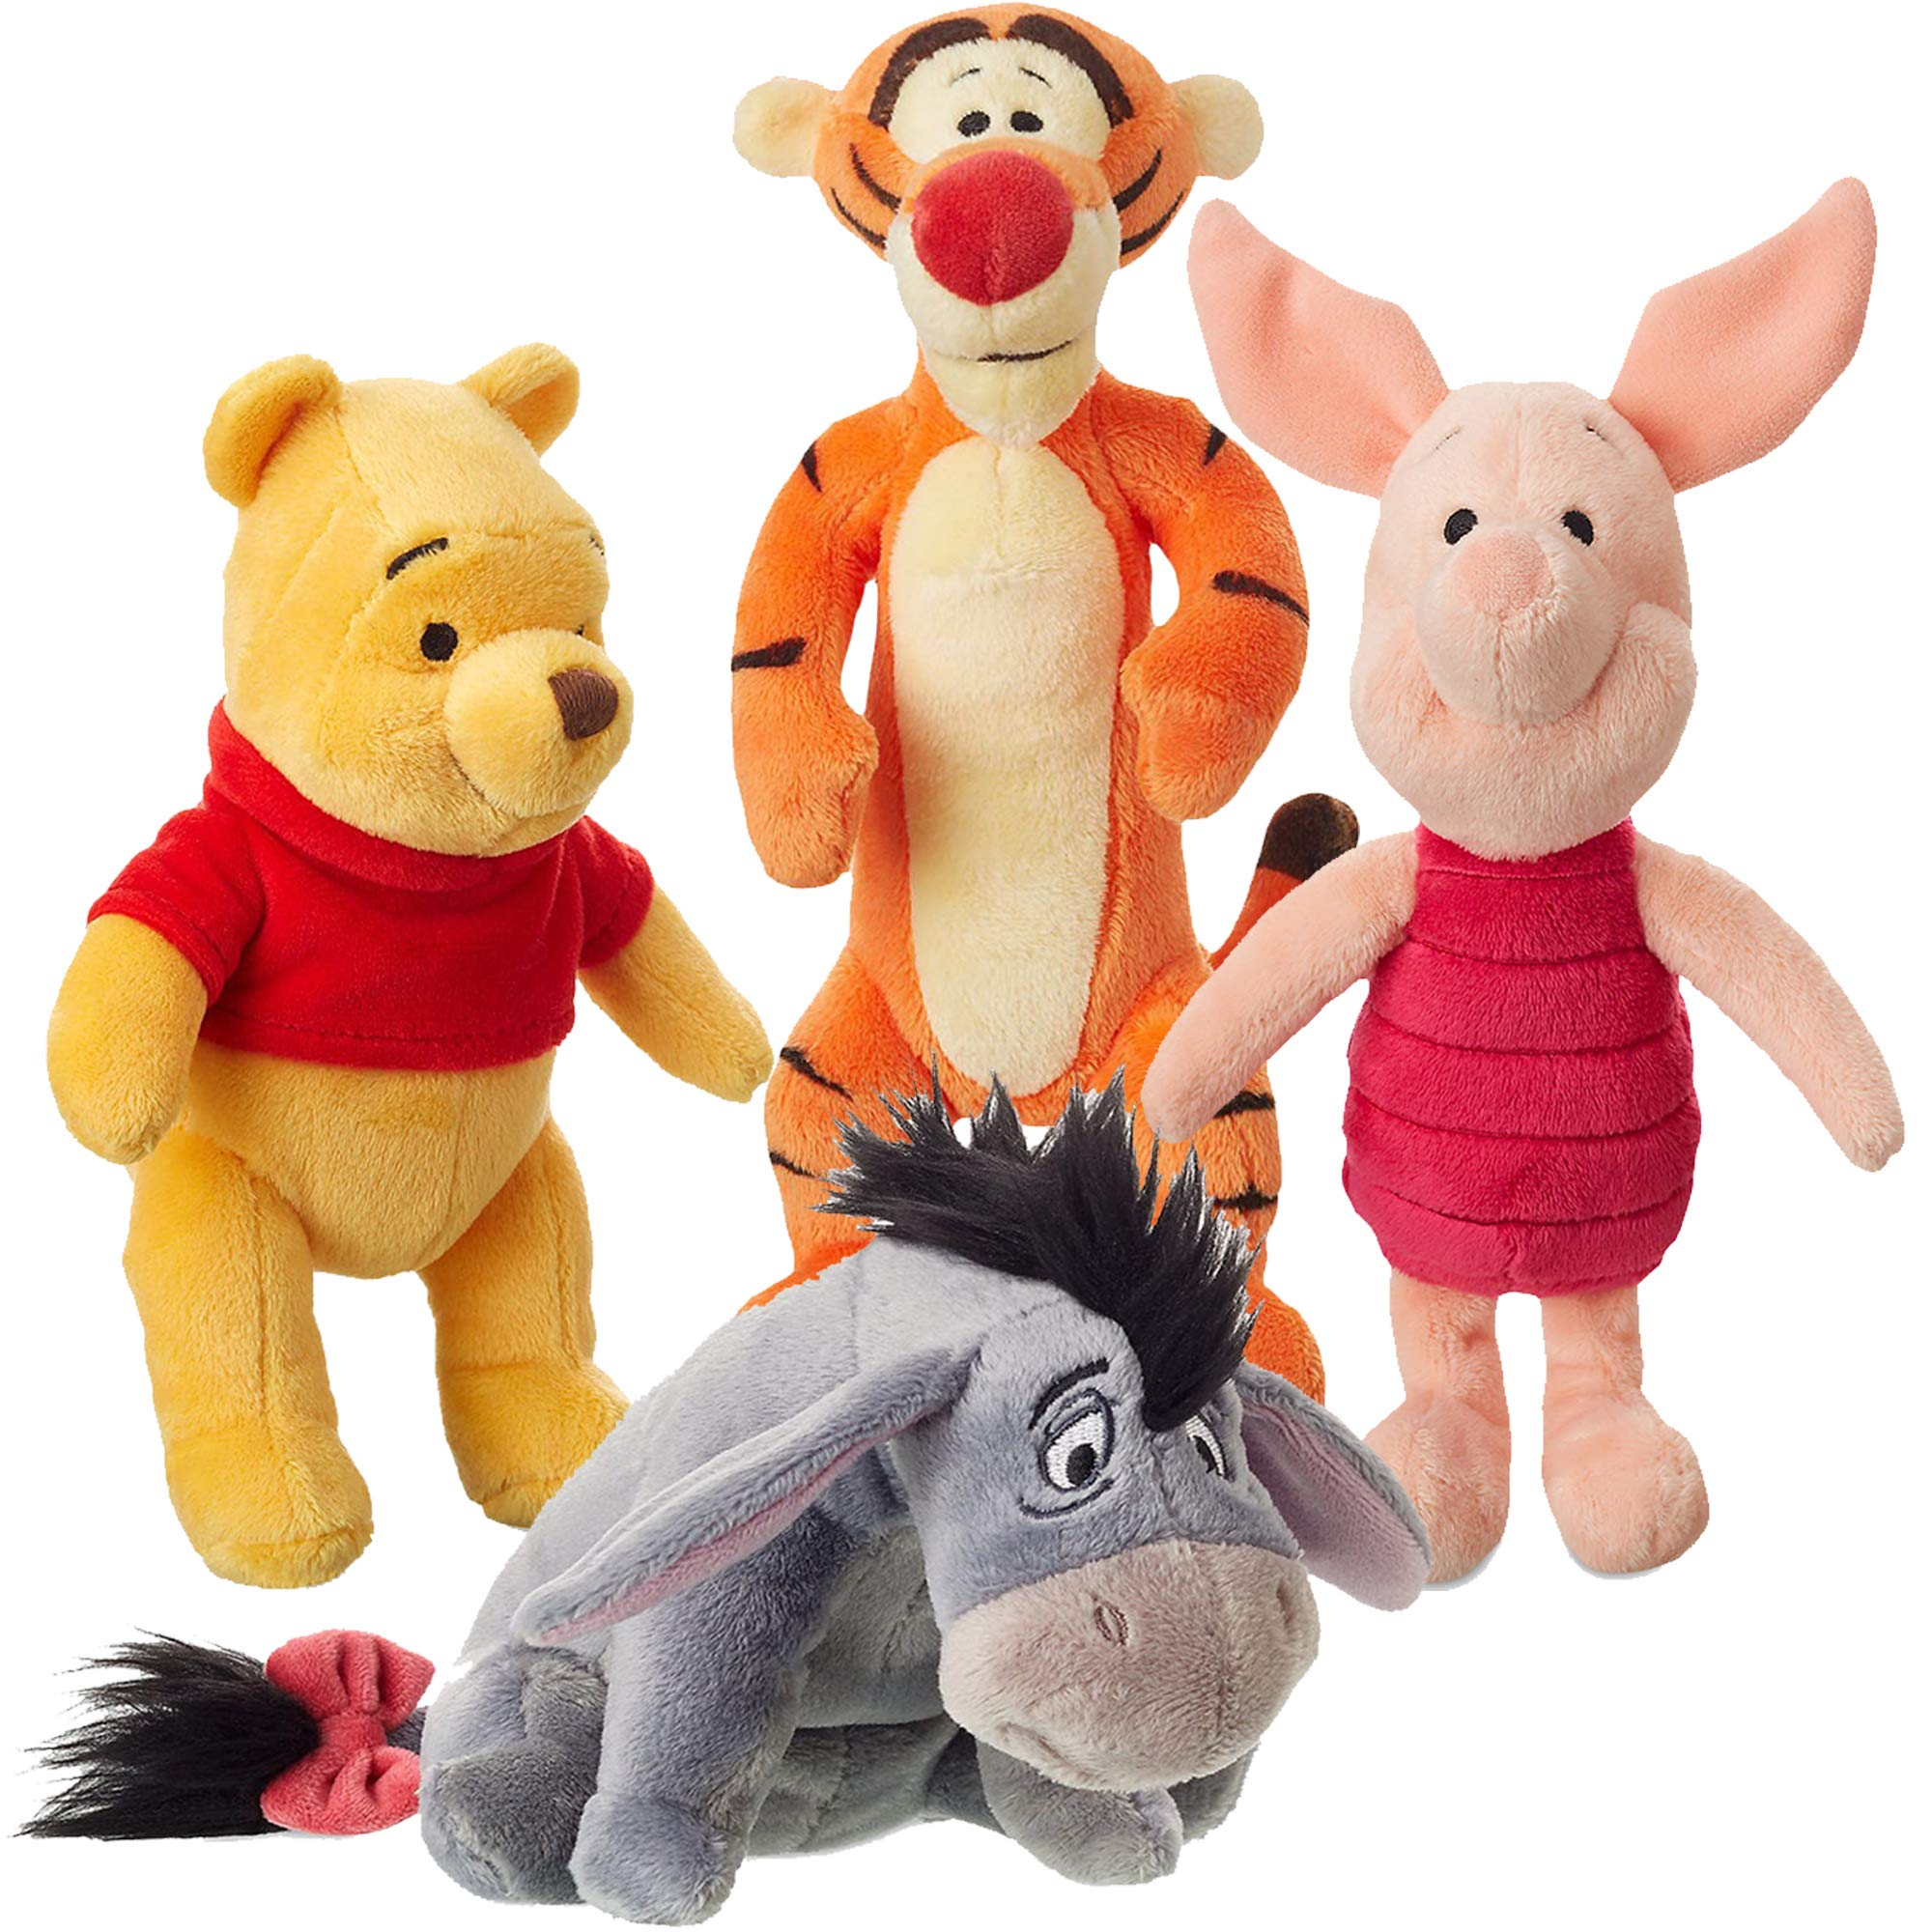 Winnie the Pooh Stuffed Animal Set and Friends Plush Toys by Winnie the Pooh